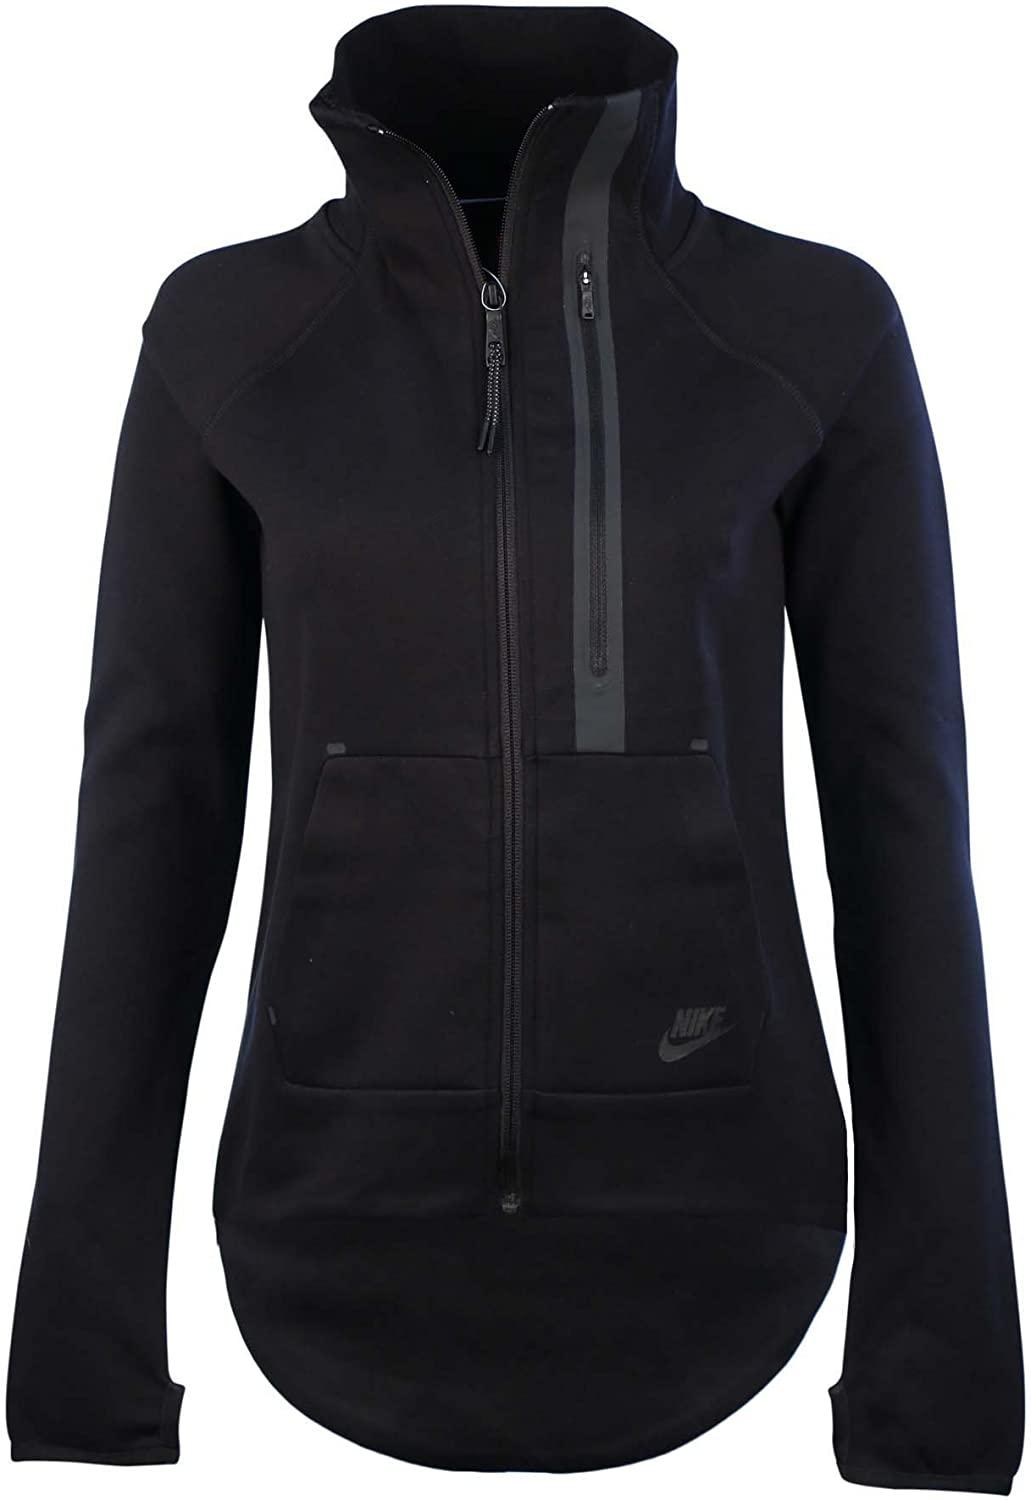 NIKE Women's Tech Fleece Moto Cape Jacket, Black, Small